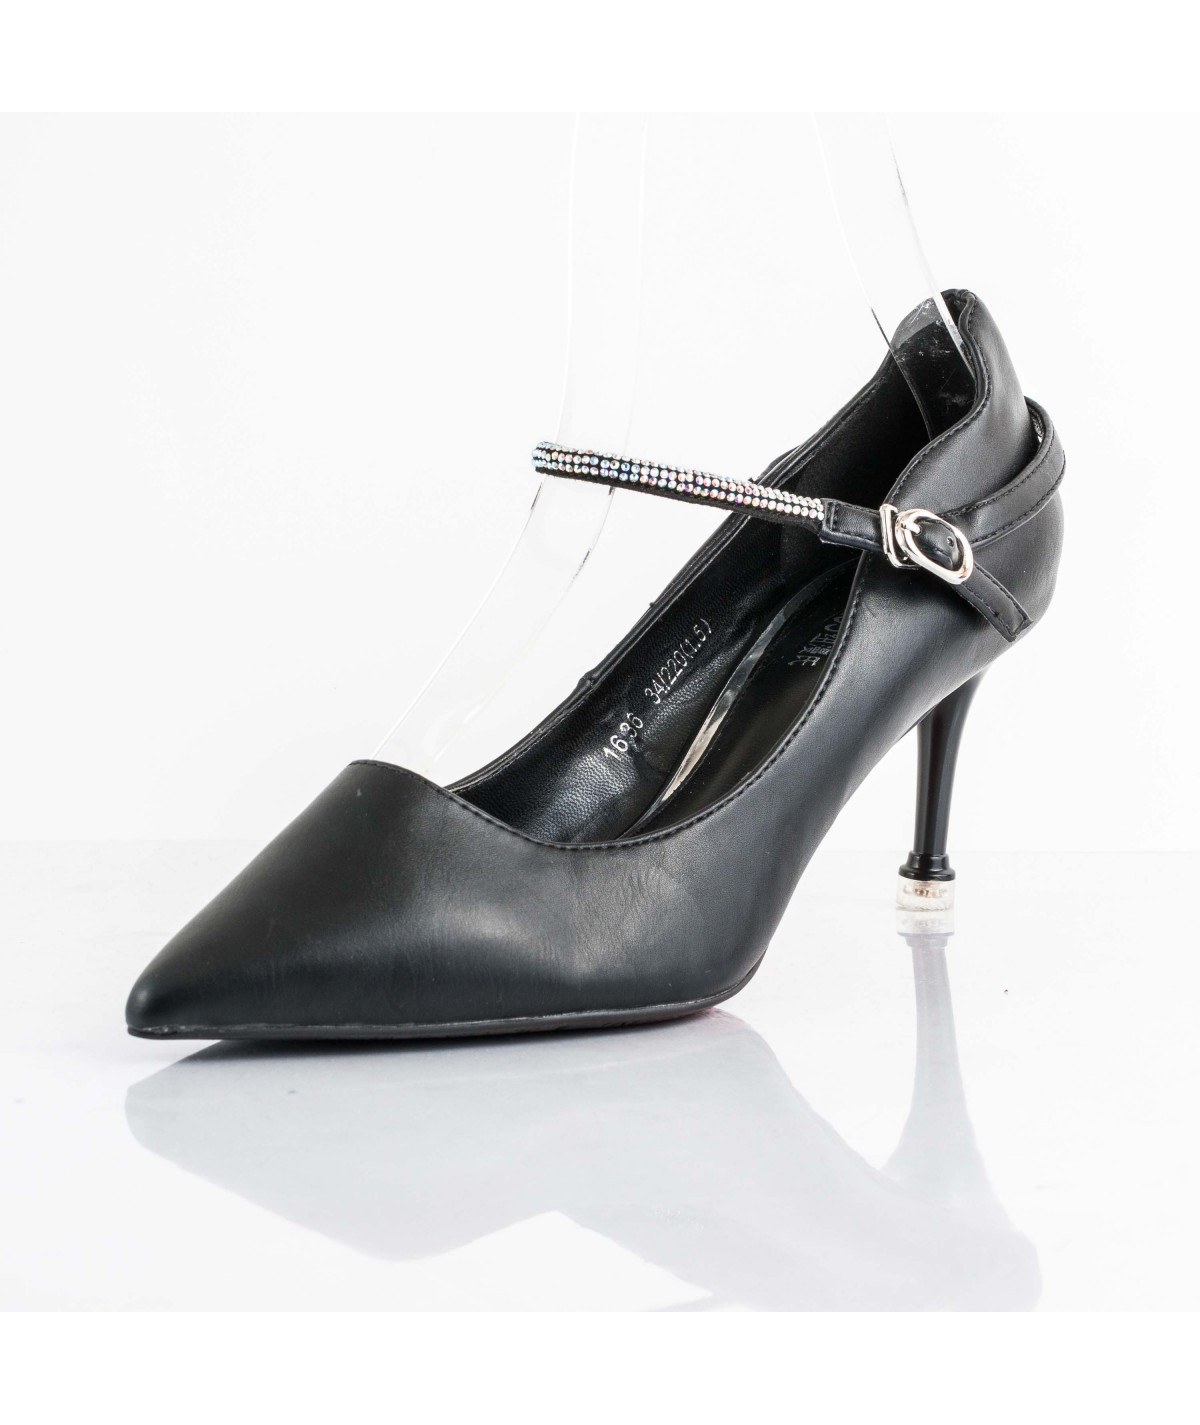 Olivia Color Black Material Leather Heel